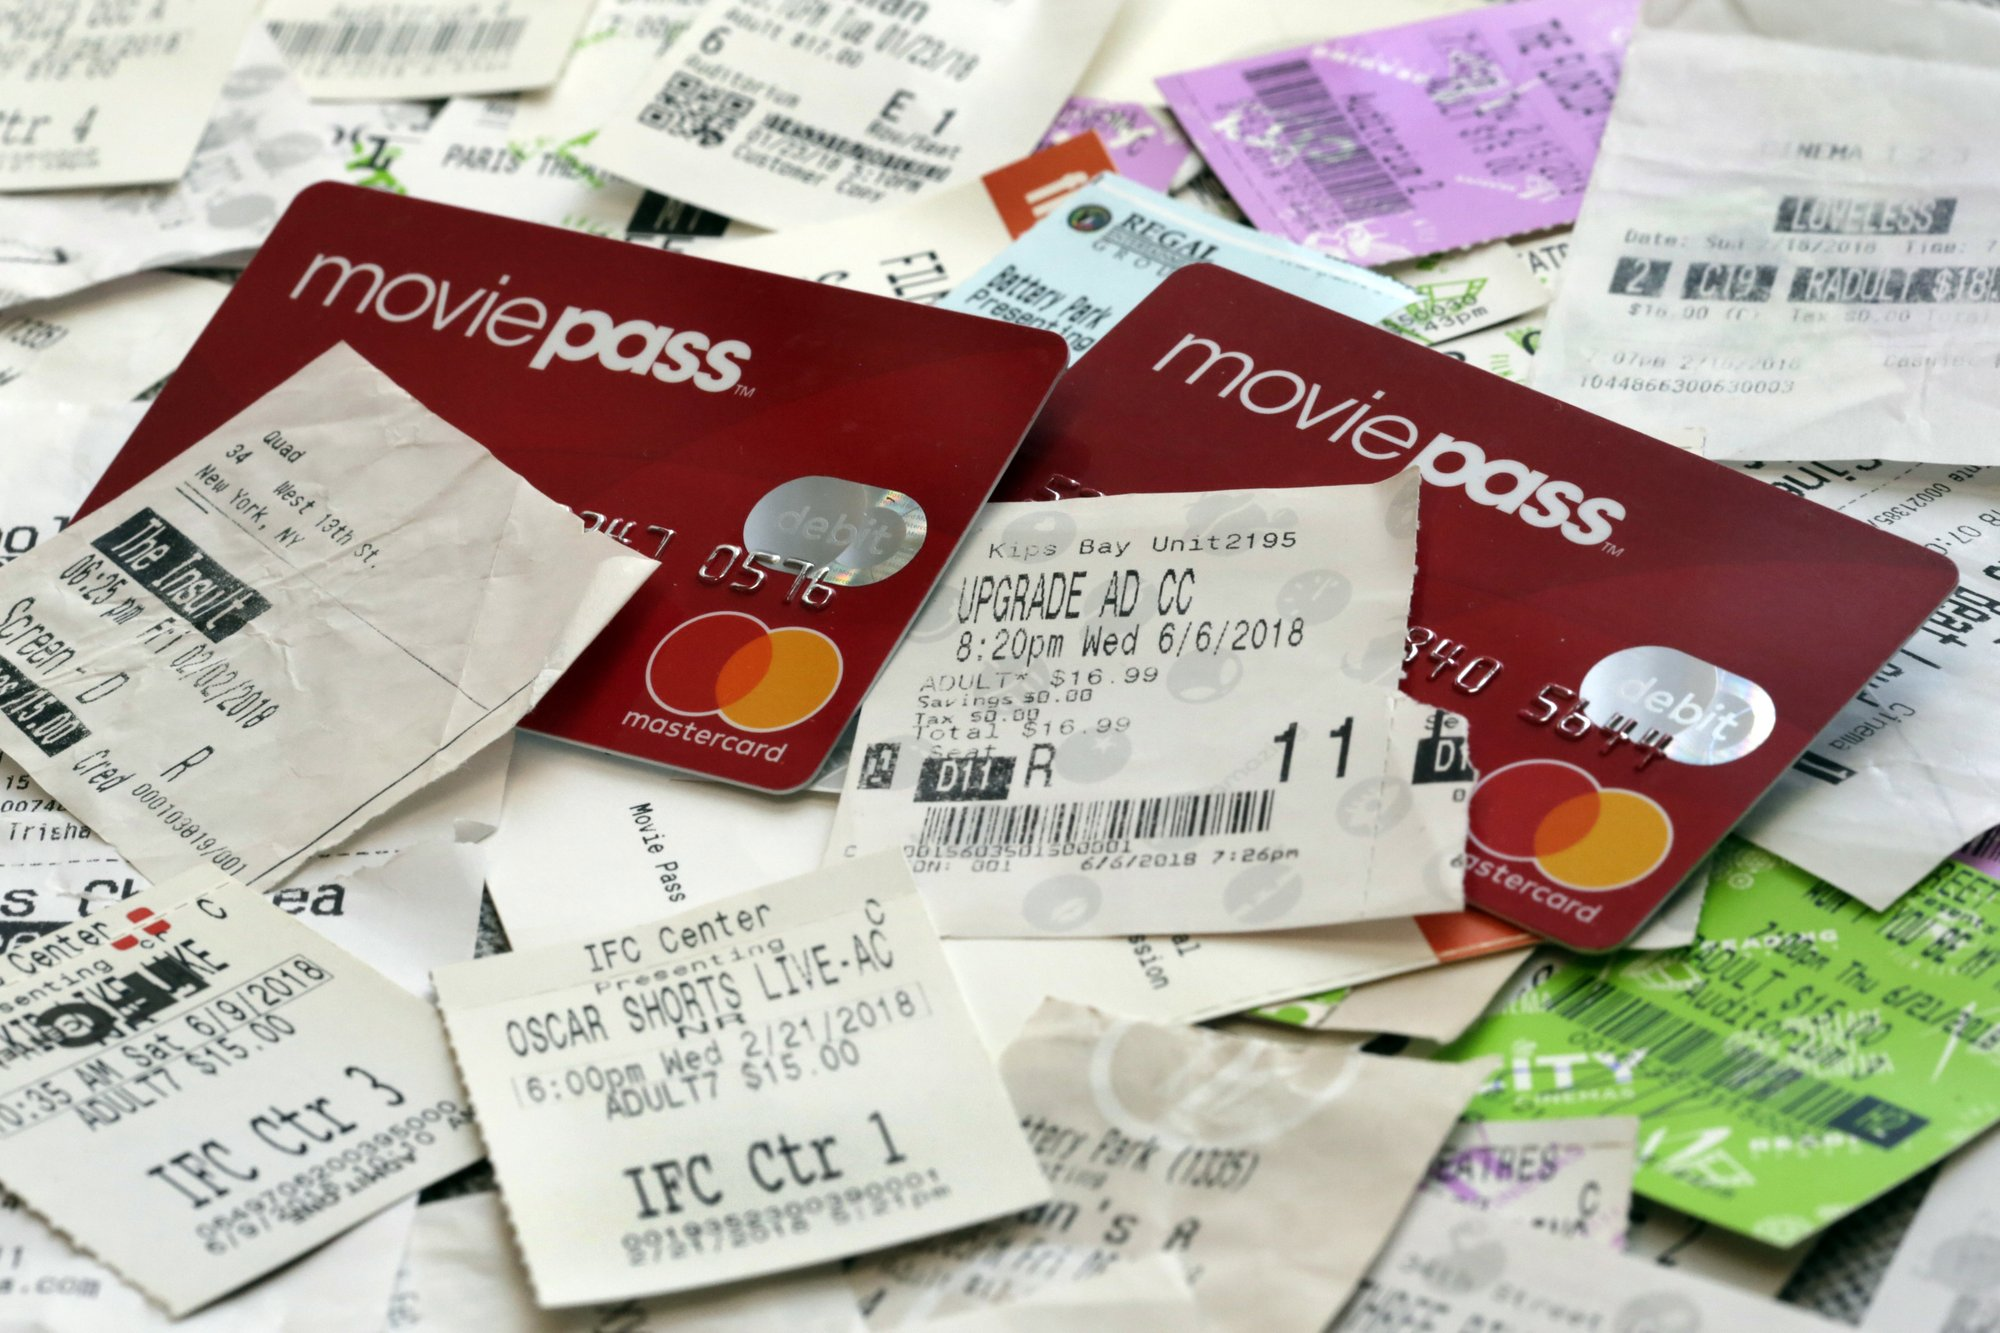 MoviePass Cards & Tickets